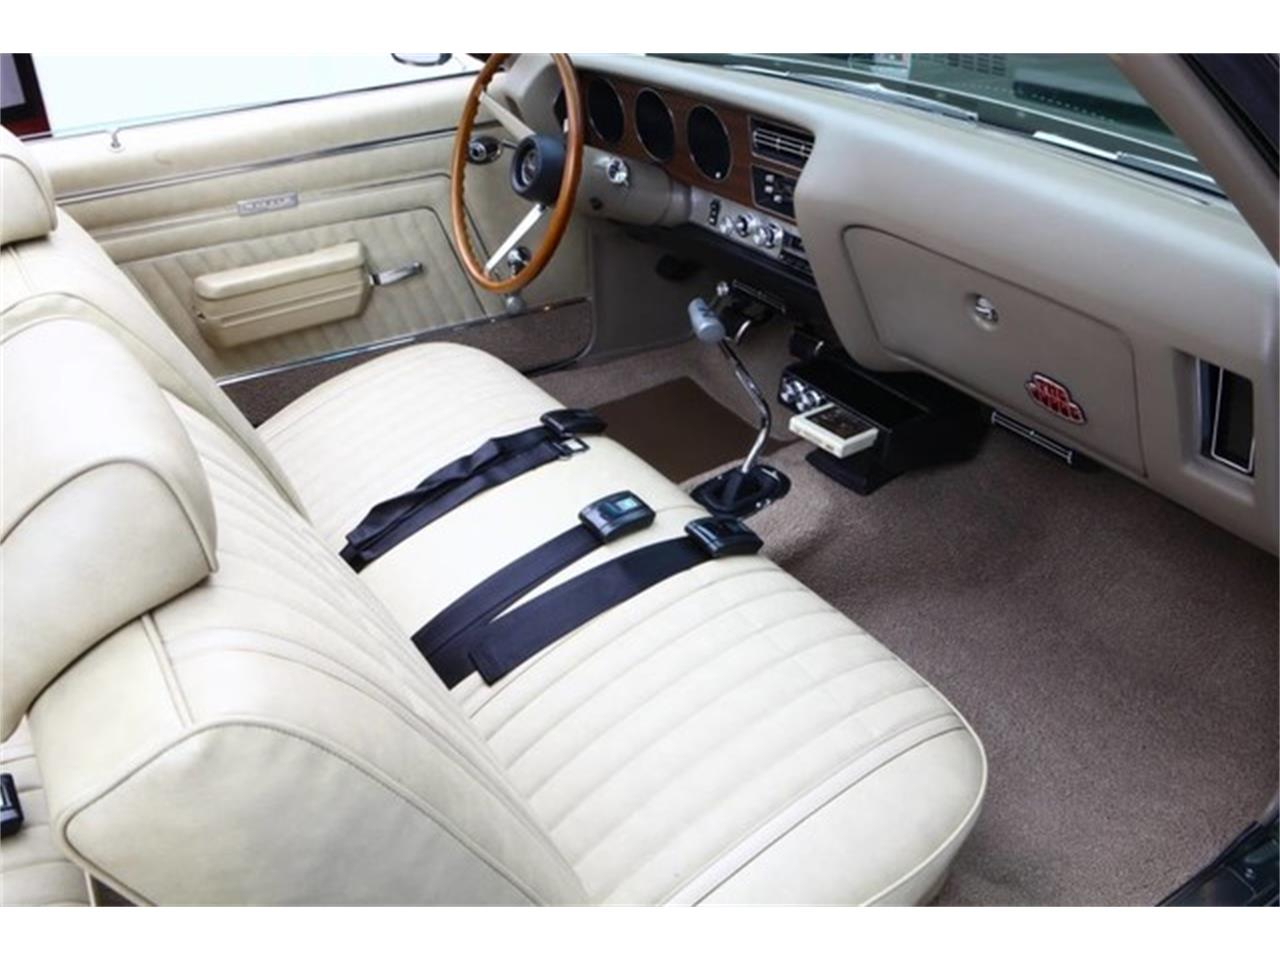 Large Picture of '70 Pontiac GTO (The Judge) located in New York - $219,000.00 Offered by Prestige Motor Car Co. - PU25